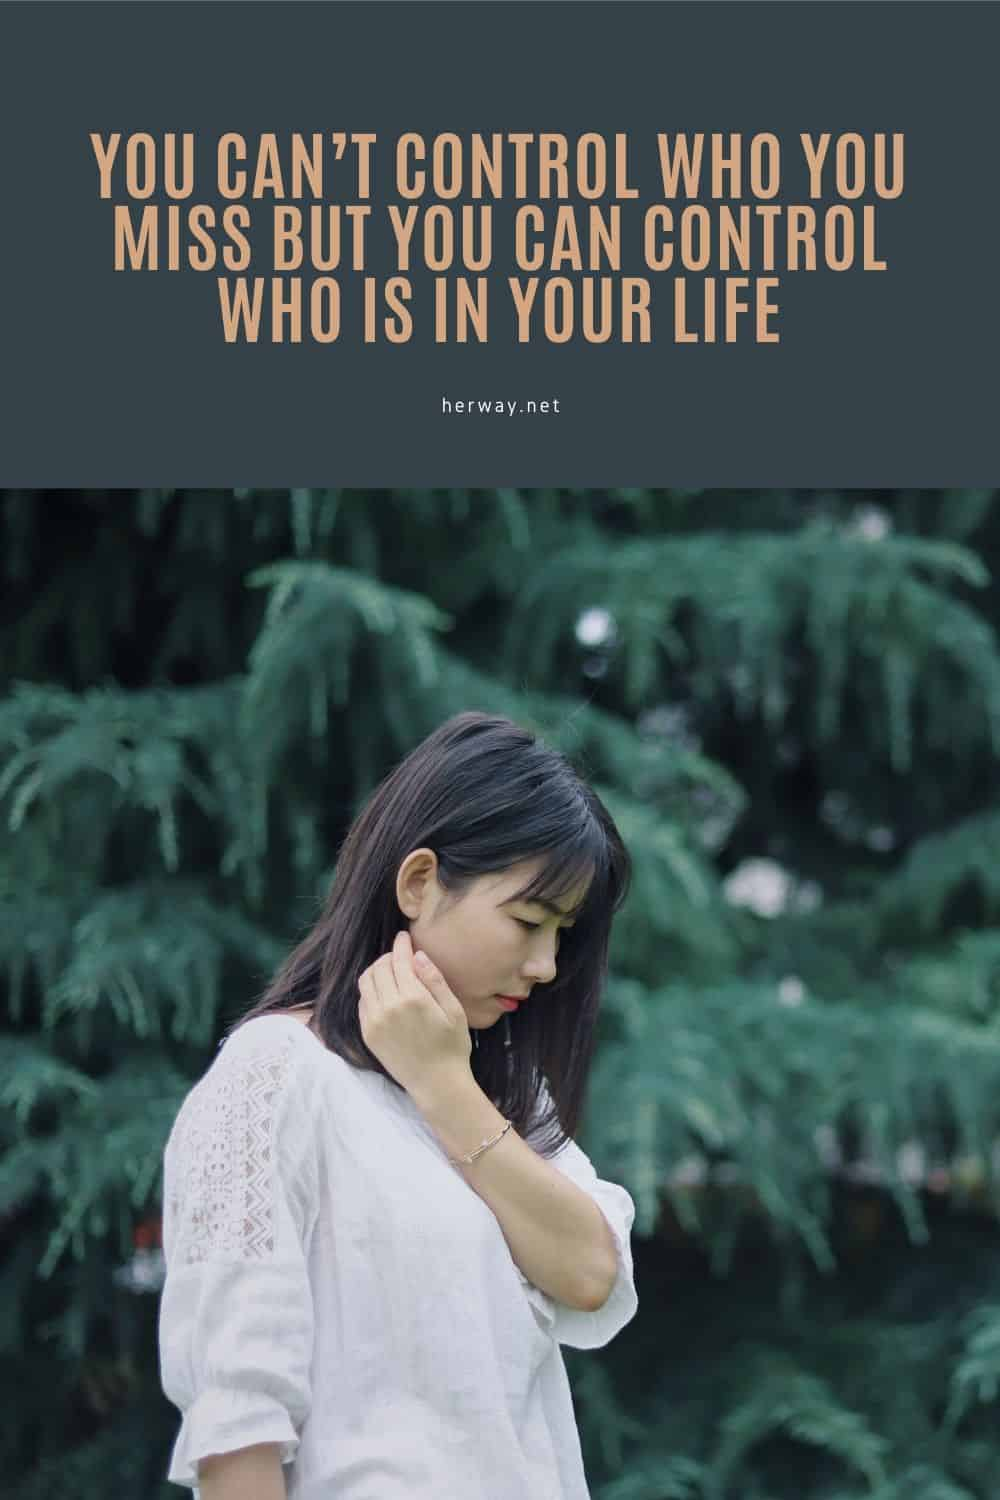 You Can't Control Who You Miss But You Can Control Who Is In Your Life